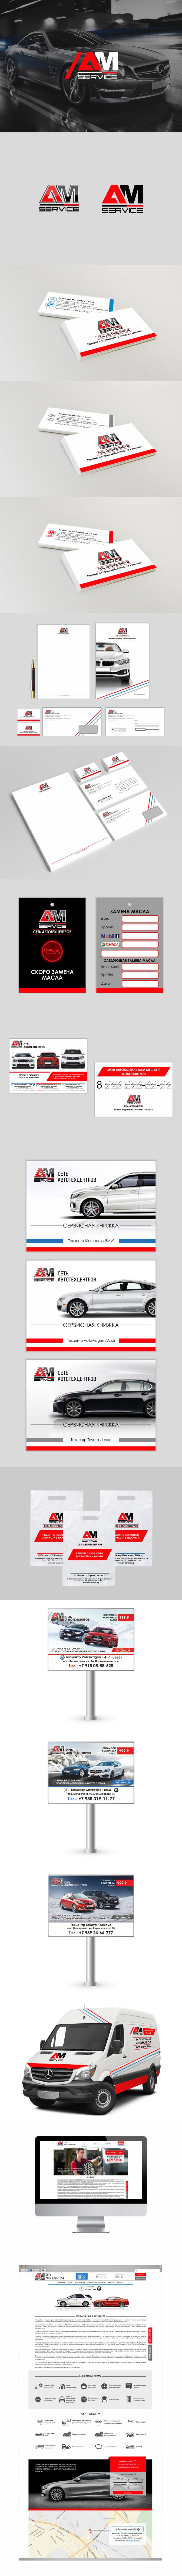 AM-service. Identity Branding. Business Card. Letterhead. Billboard.Vehicle branding. Web design.